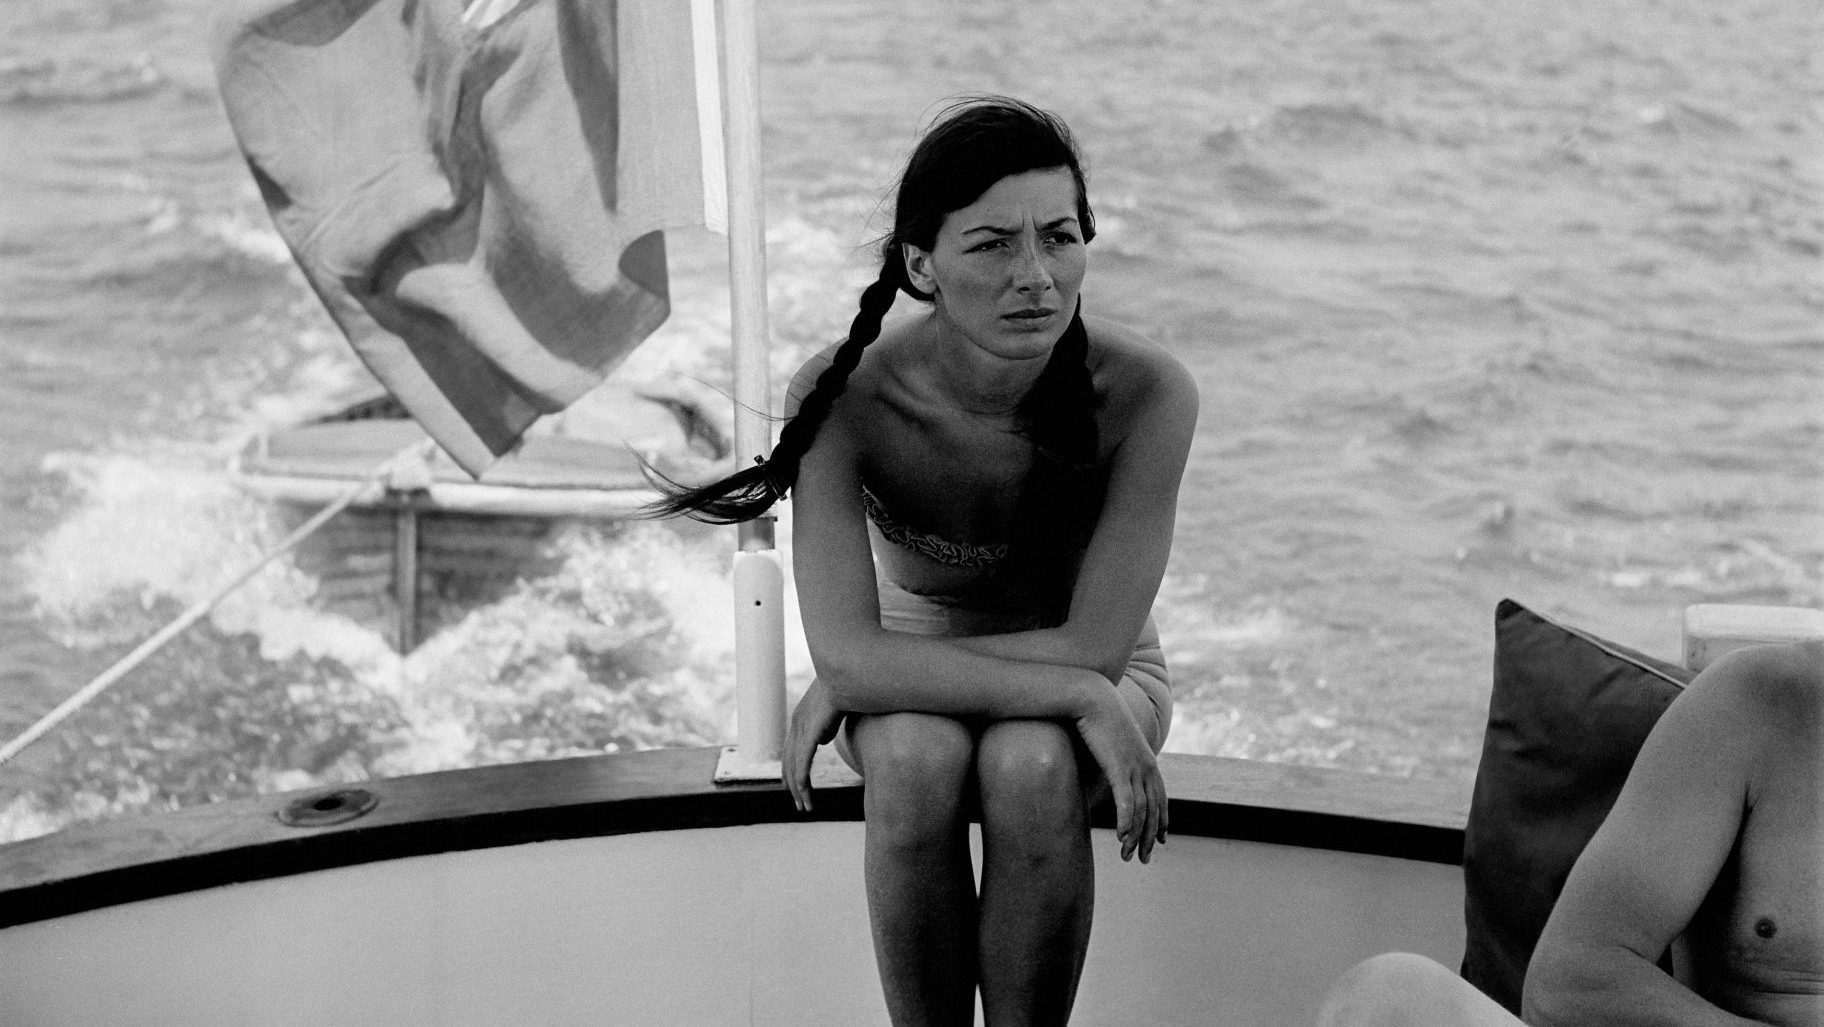 Juliette Gréco, seated in the stern of a boat off the coast of France, in 1950. Credit: REPORTERS ASSOCIES/Gamma- Rapho via Getty Images)